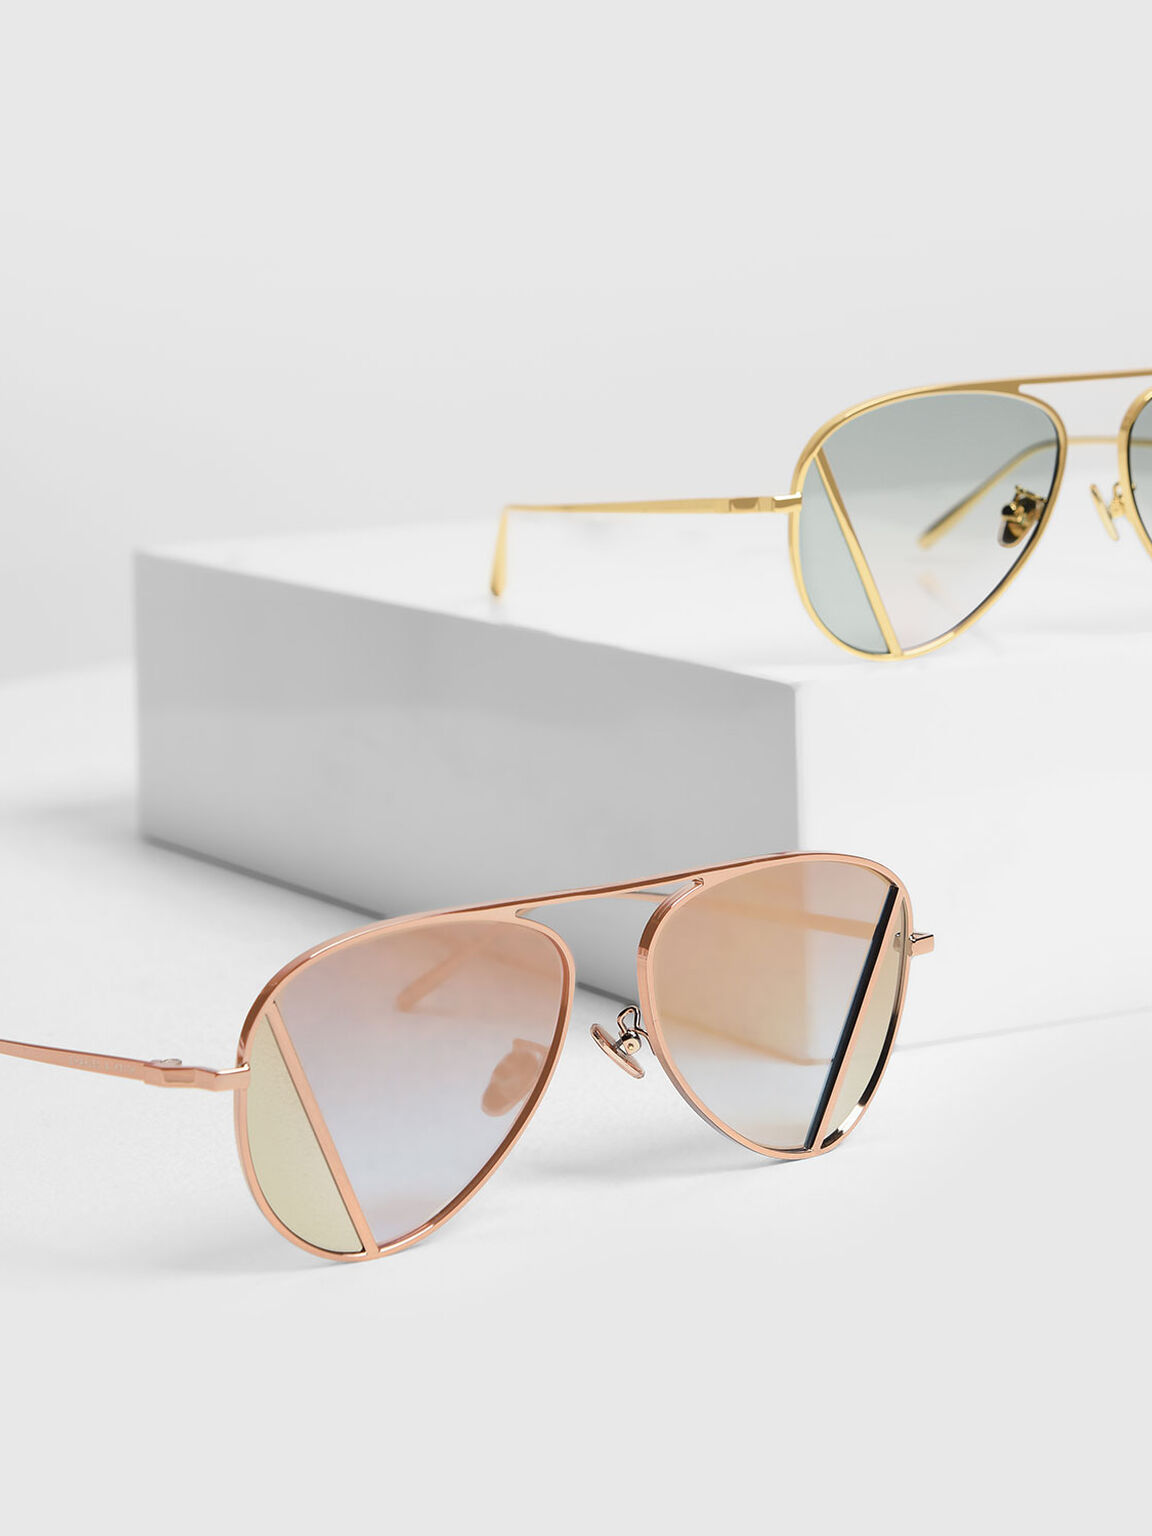 Two-Tone Aviator Sunglasses, Rose Gold, hi-res